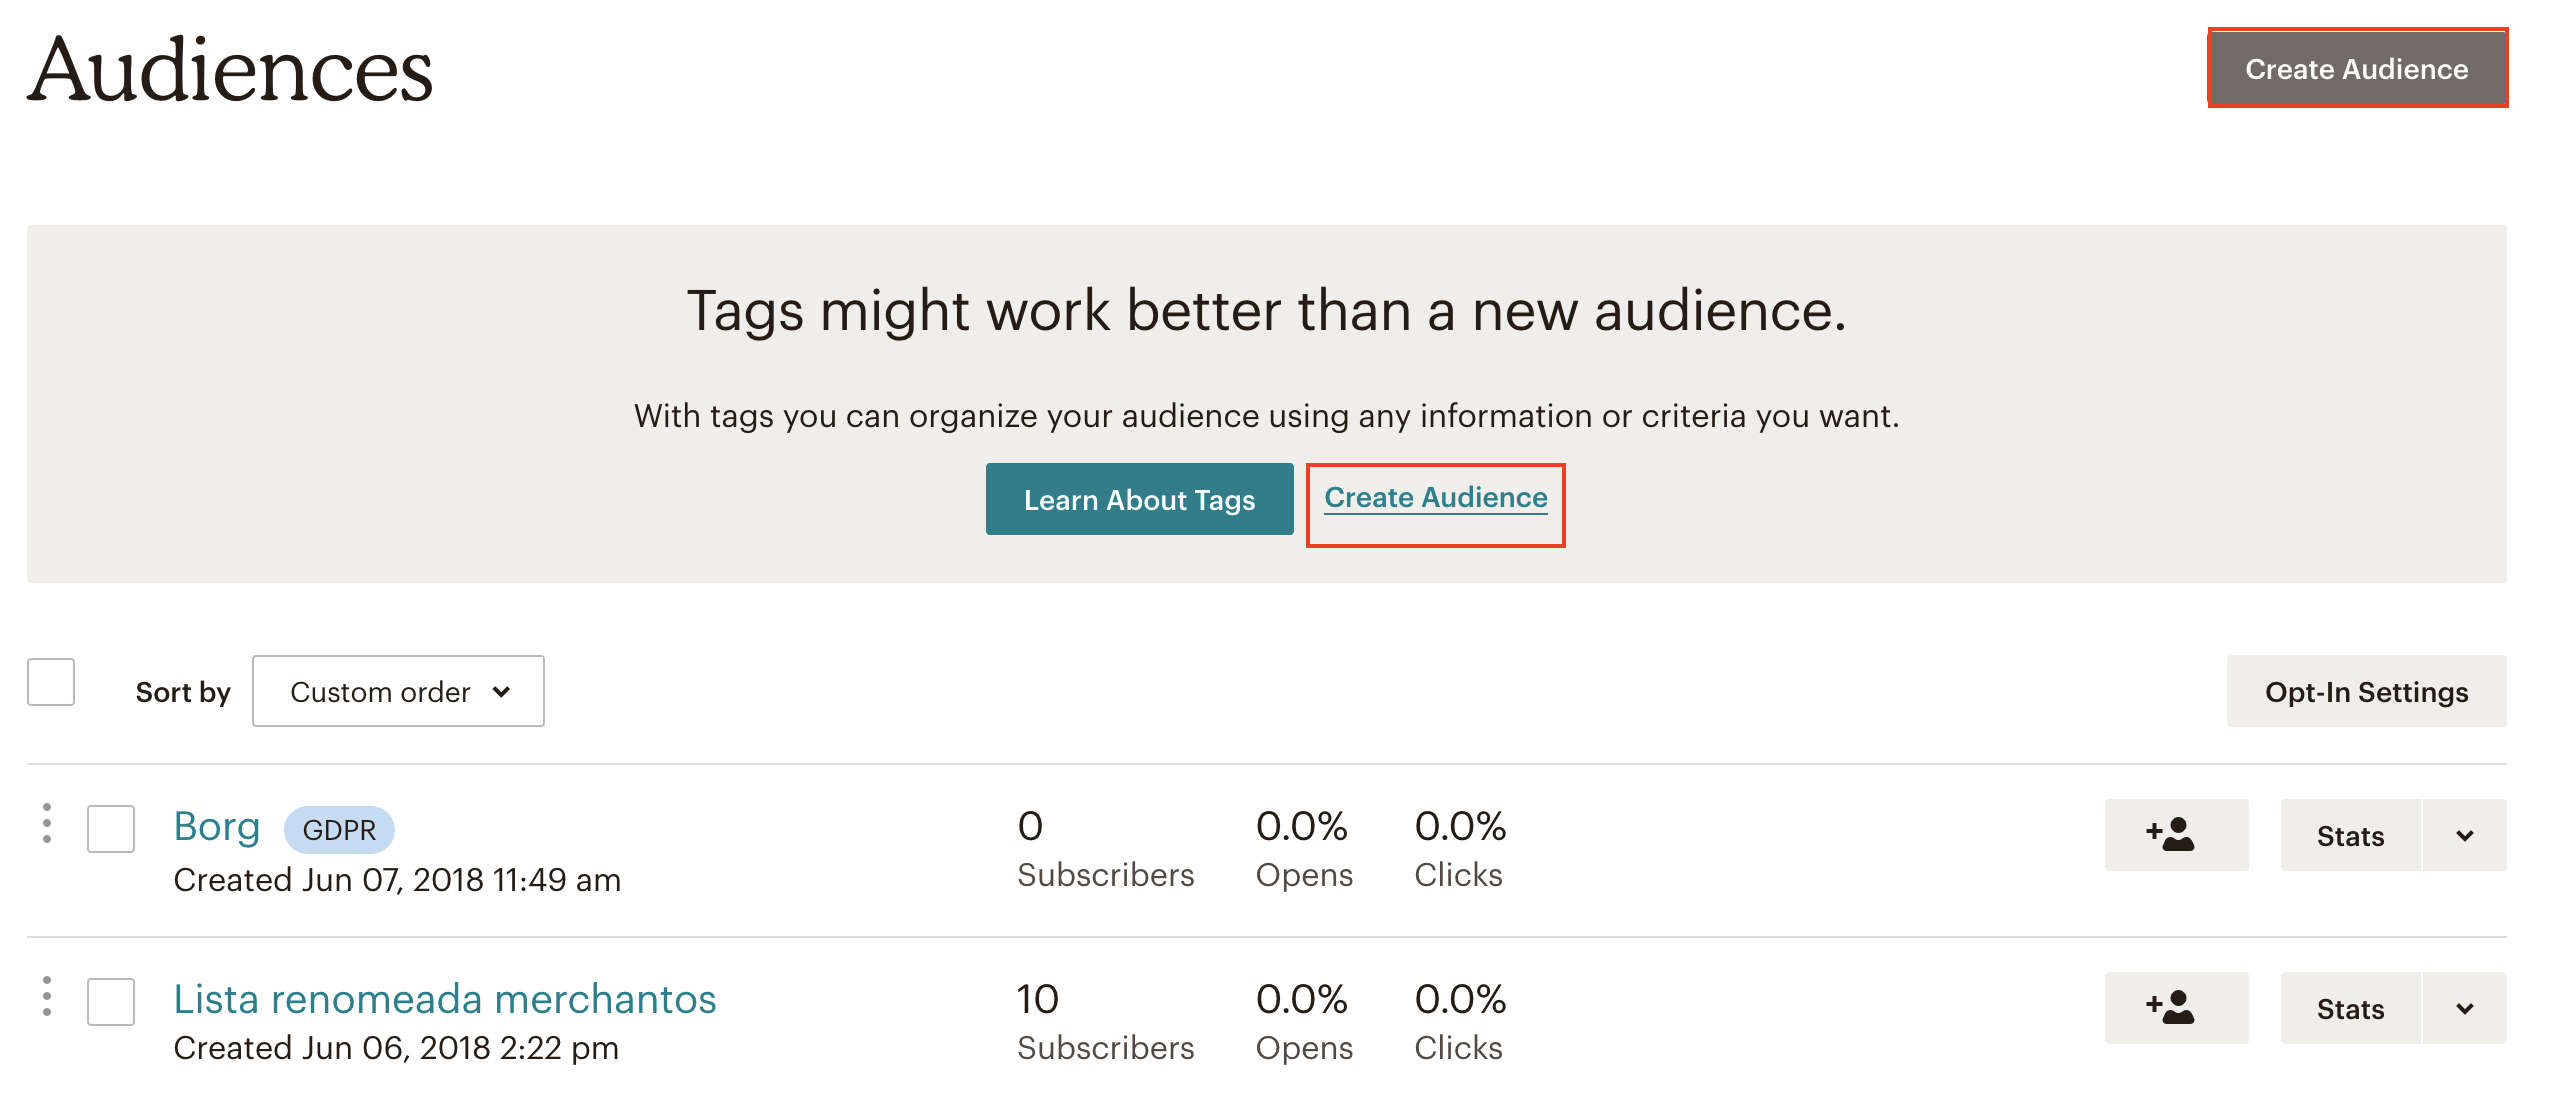 Create_Audience.png